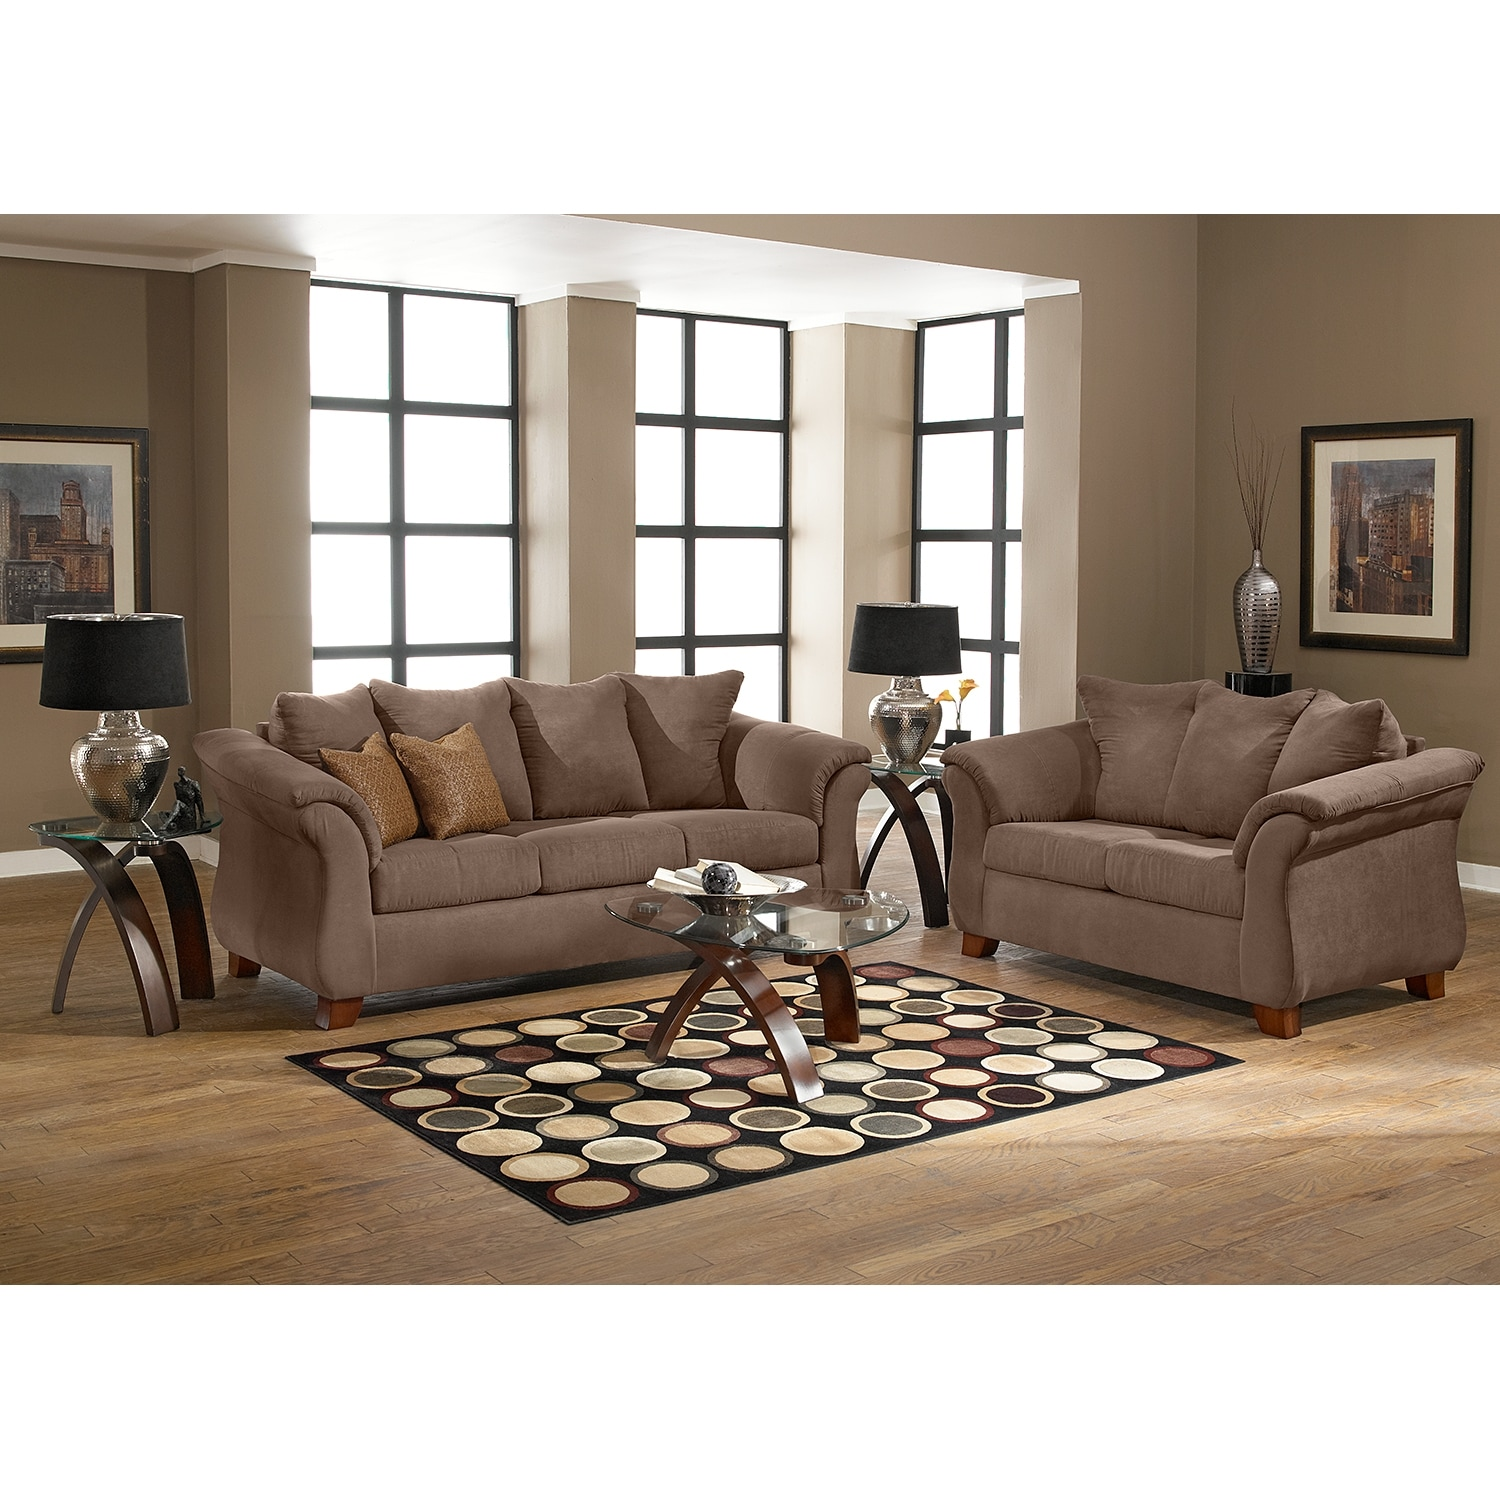 Adrian sofa taupe american signature furniture for In living furniture